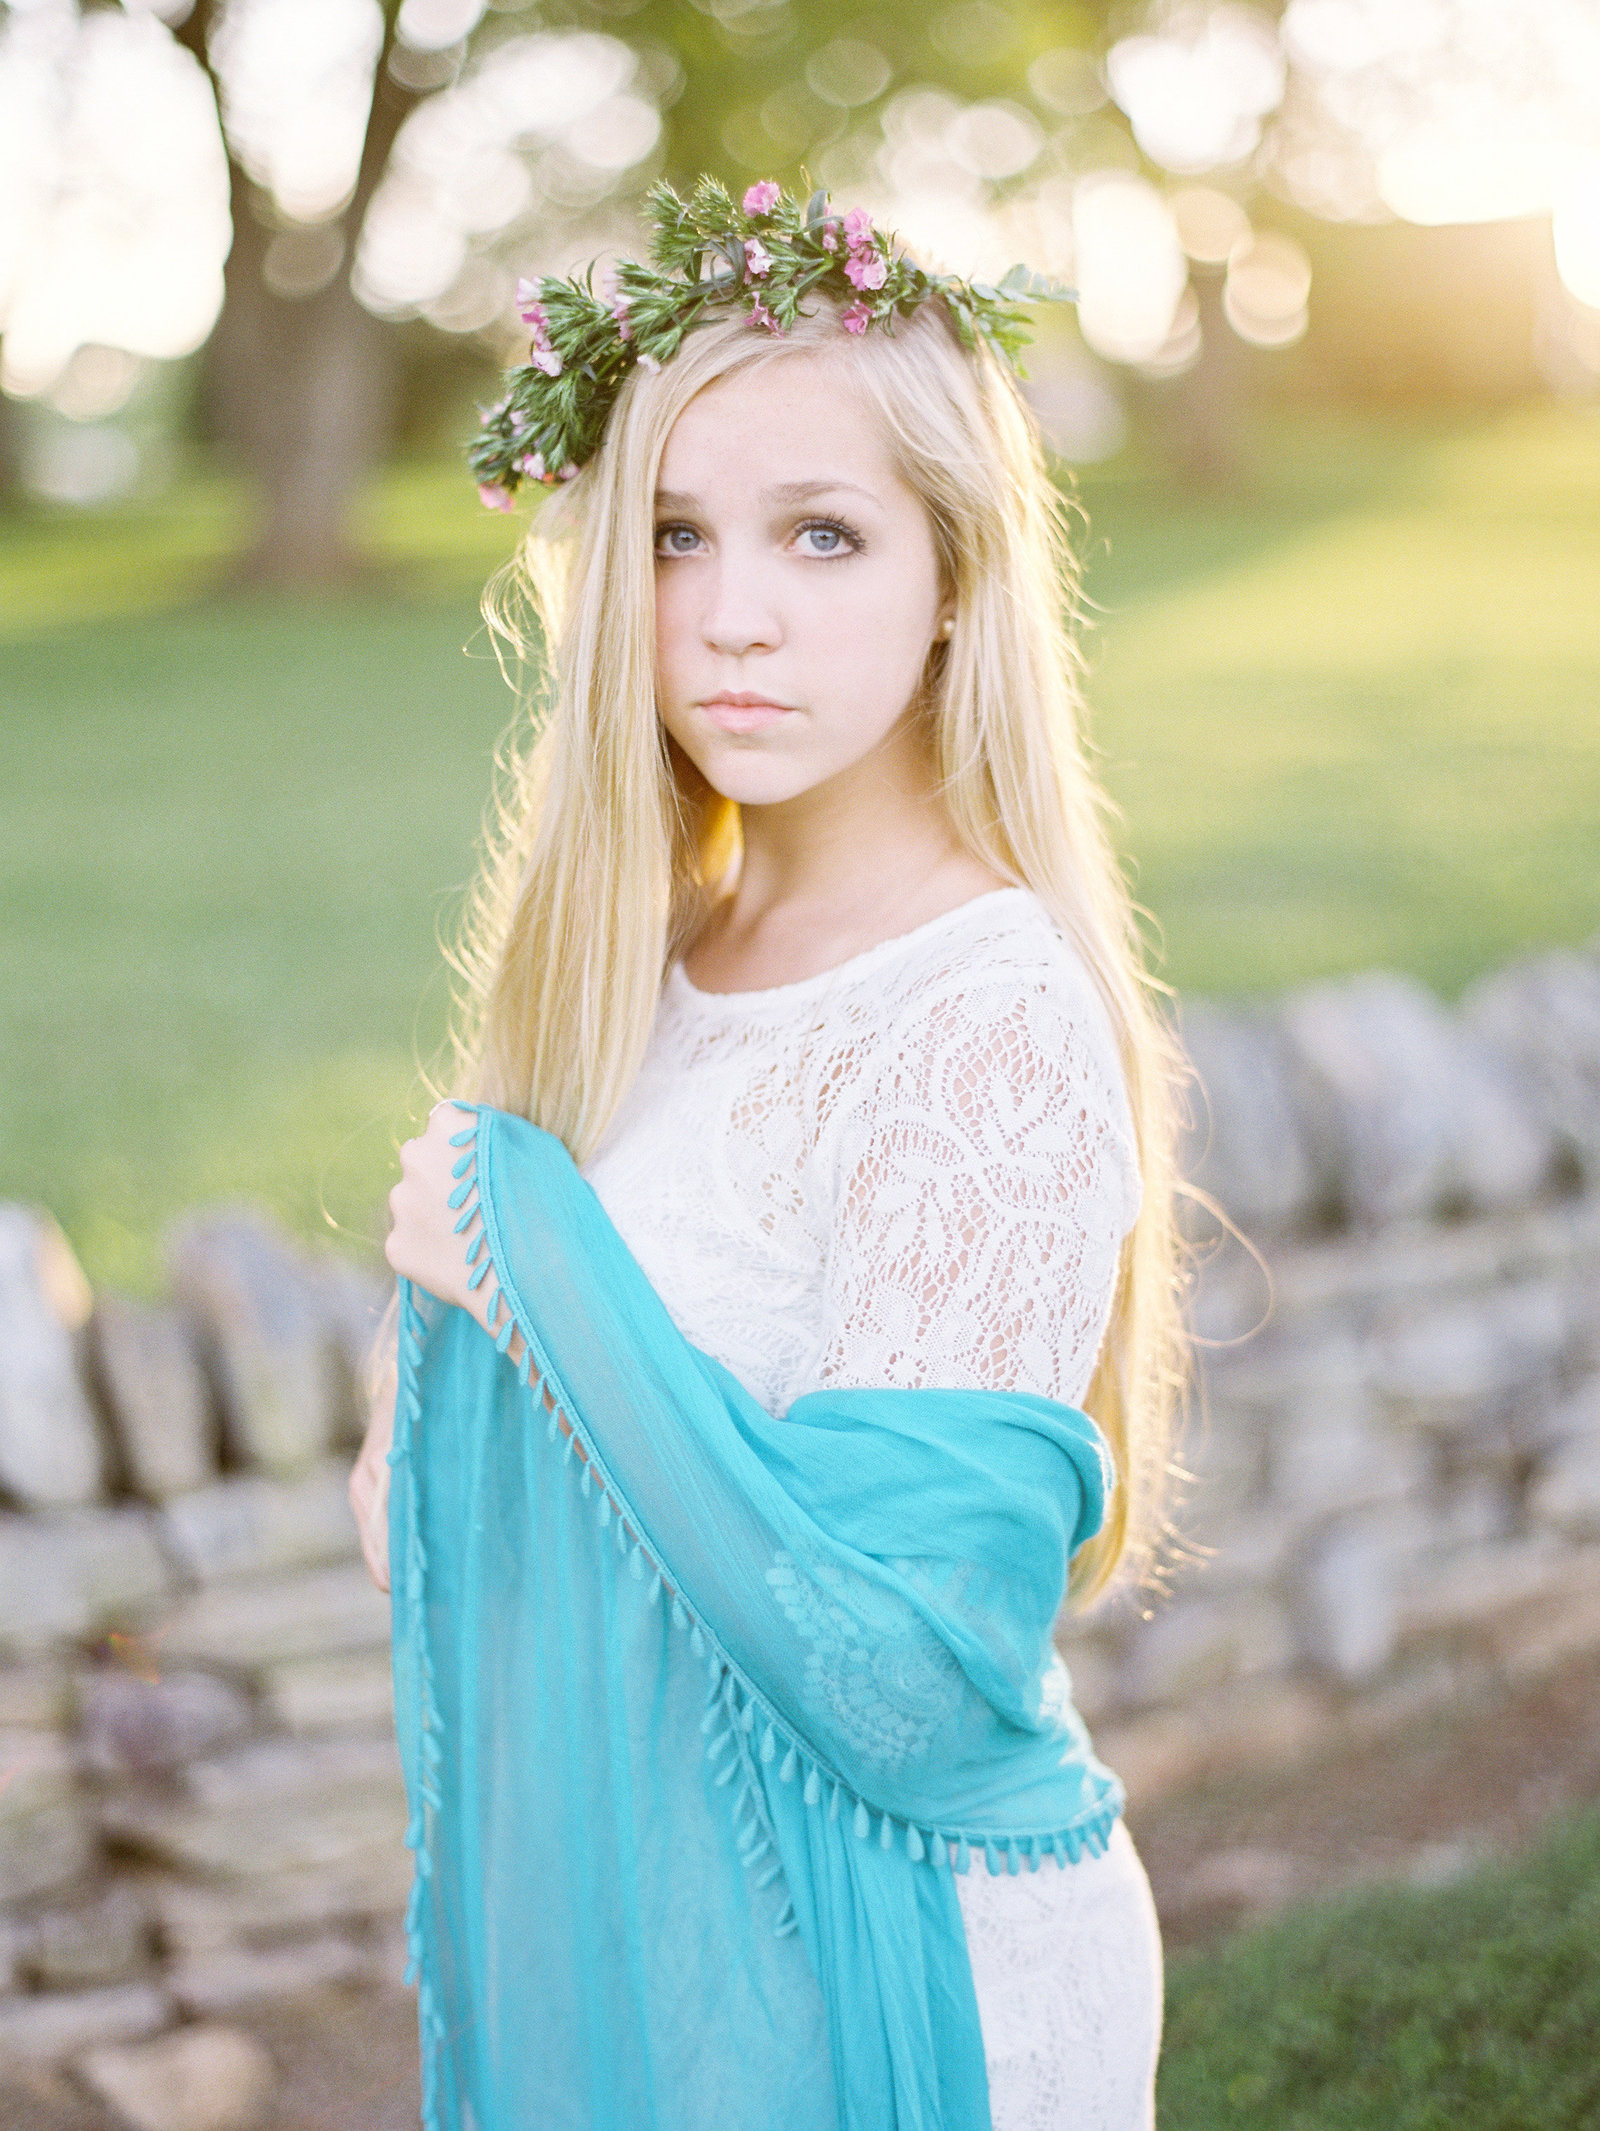 raleigh-nc-senior-portrait-photographer-caseyrose-seniorreps-2016-080